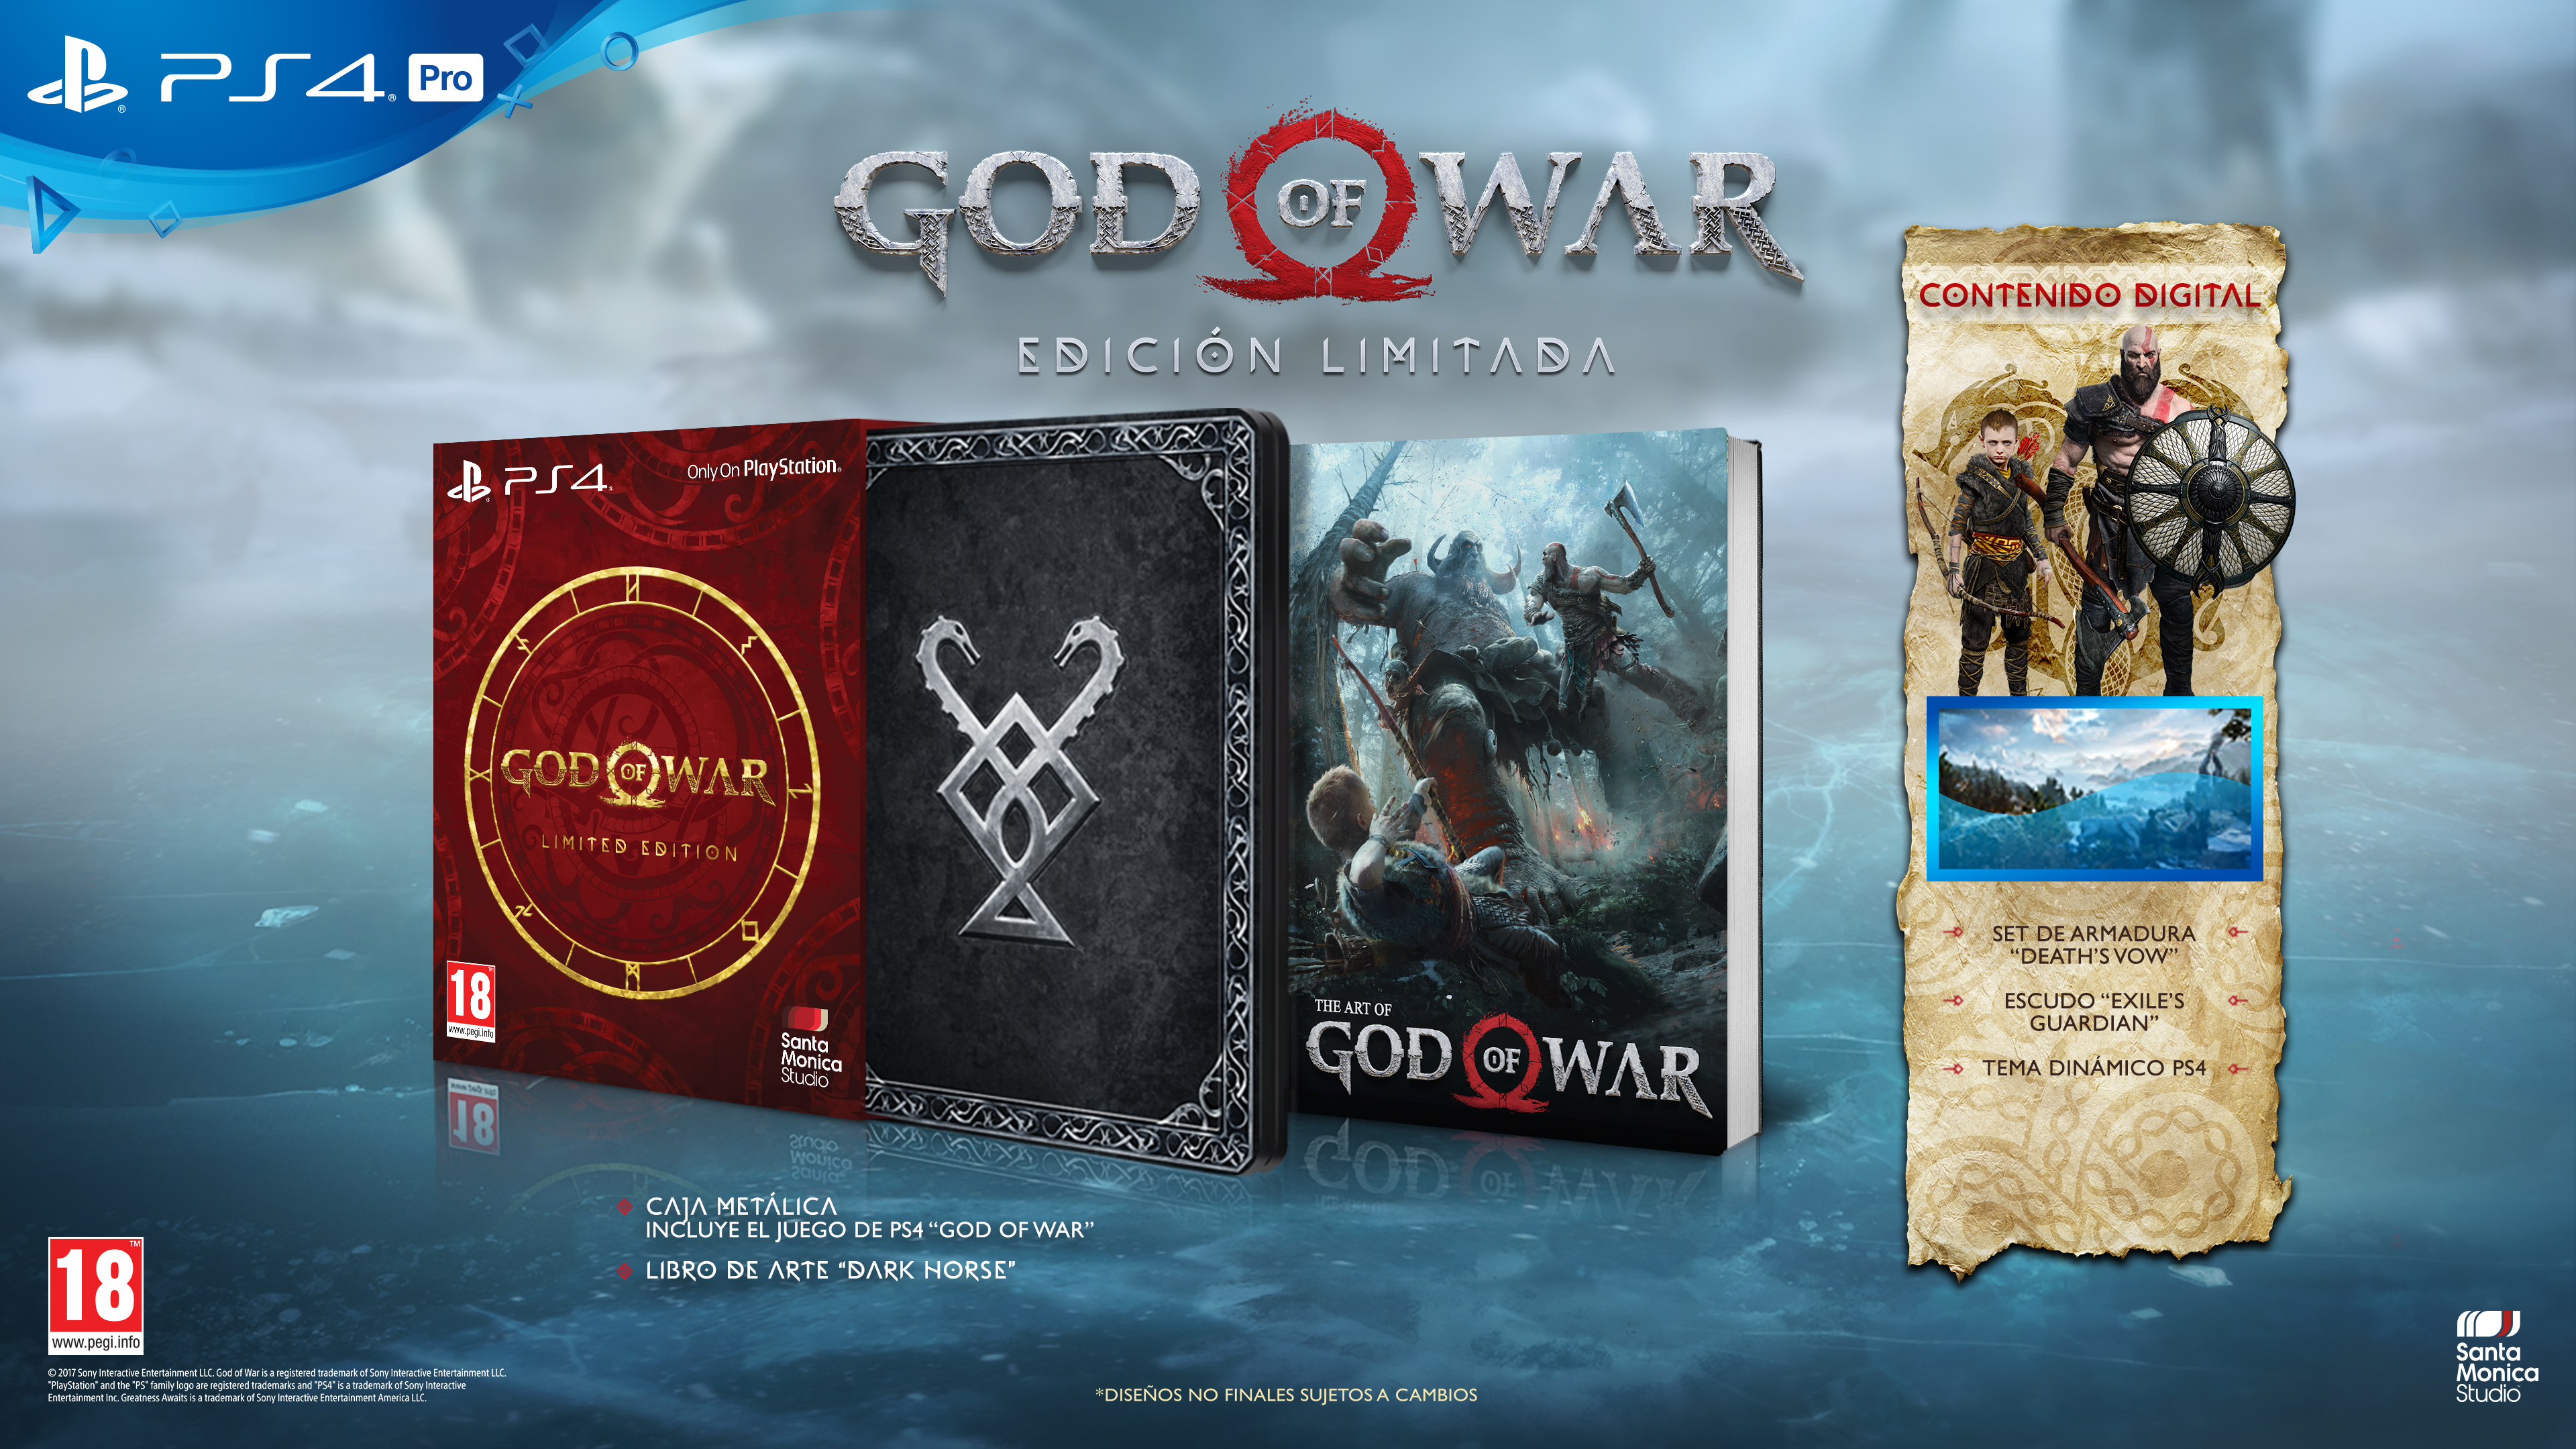 GOW_PS4_LIMITED_EDITION_RETAIL_3840_2160_ES